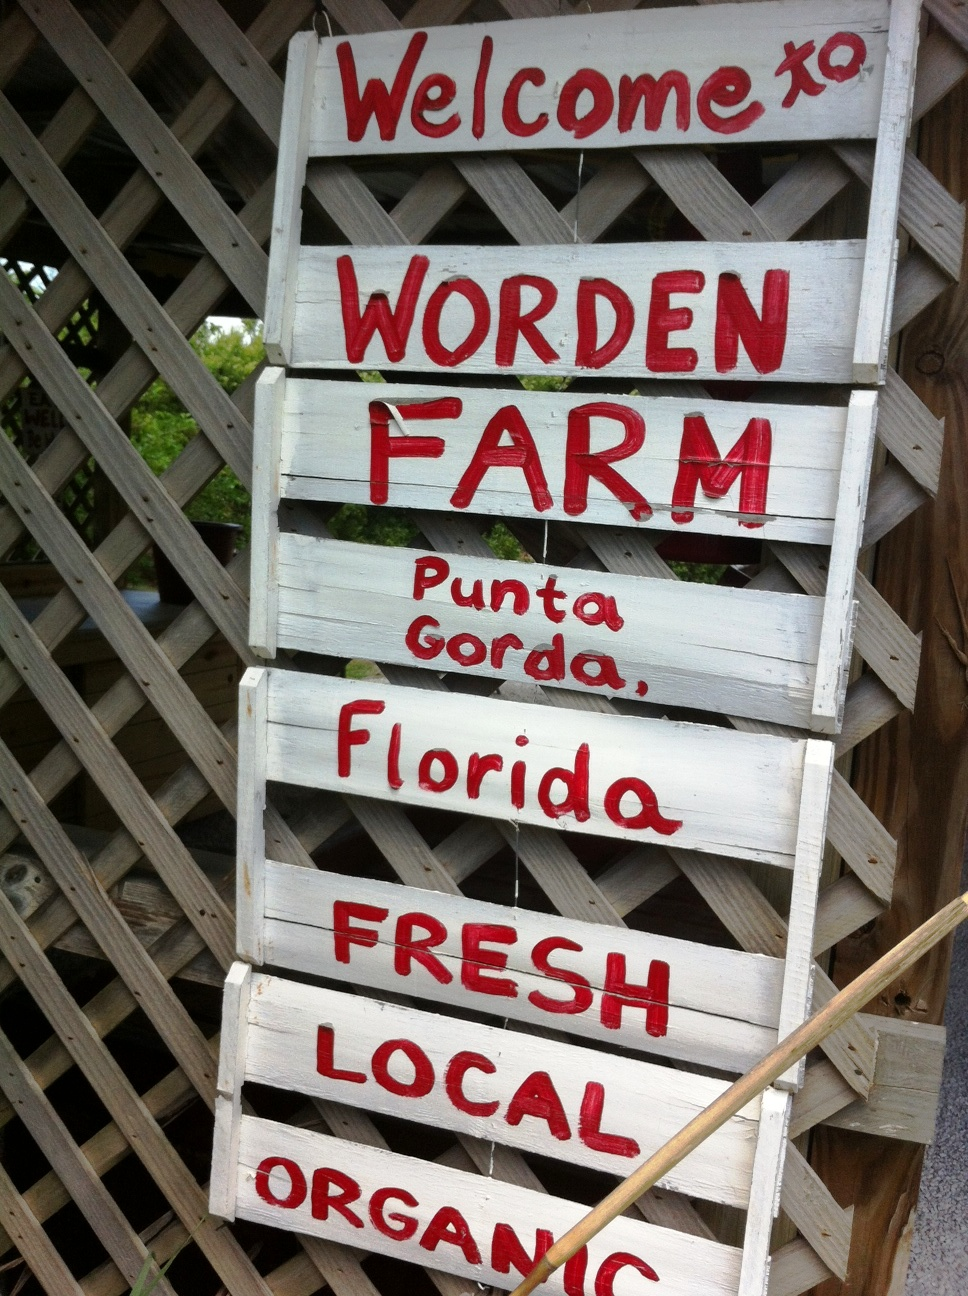 Learning to Cook Quick, Easy and Healthy Vegan Meals at Worden Farms in Punta Gorda, Fla.